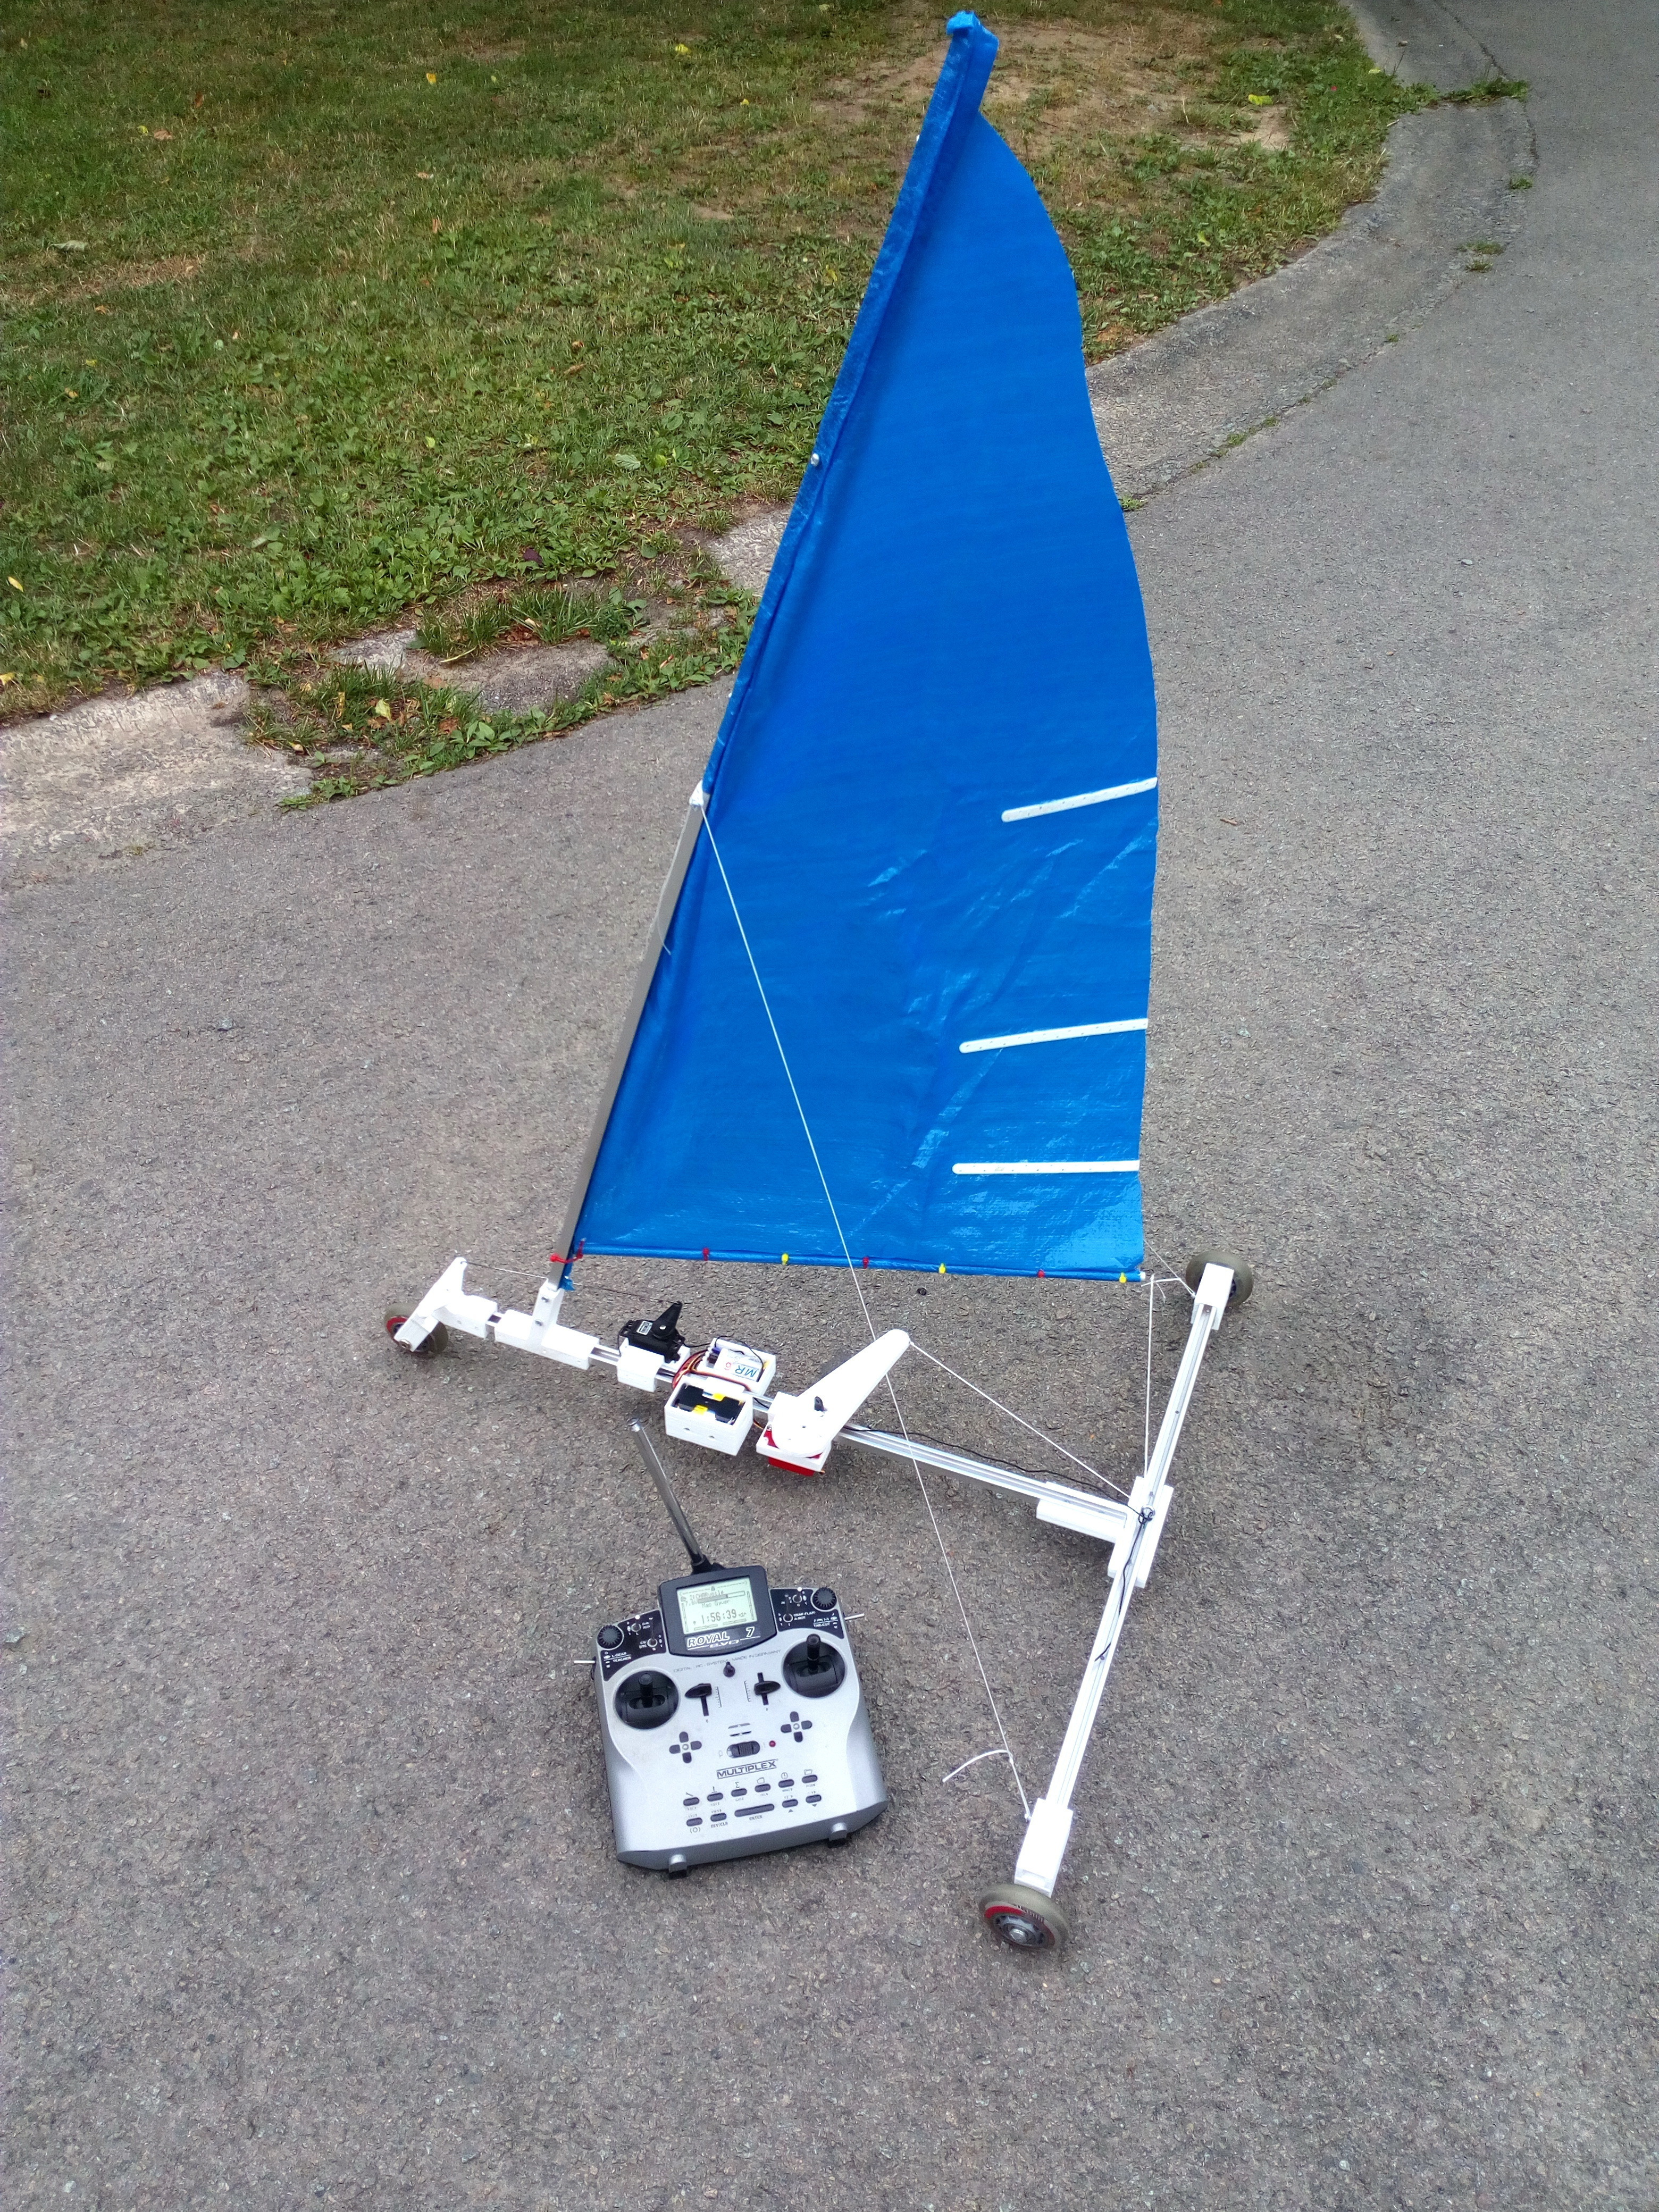 3d Printed Char A Voile Sand Yachting Land Yacht Sailing Rc By Macgyverbe Pinshape